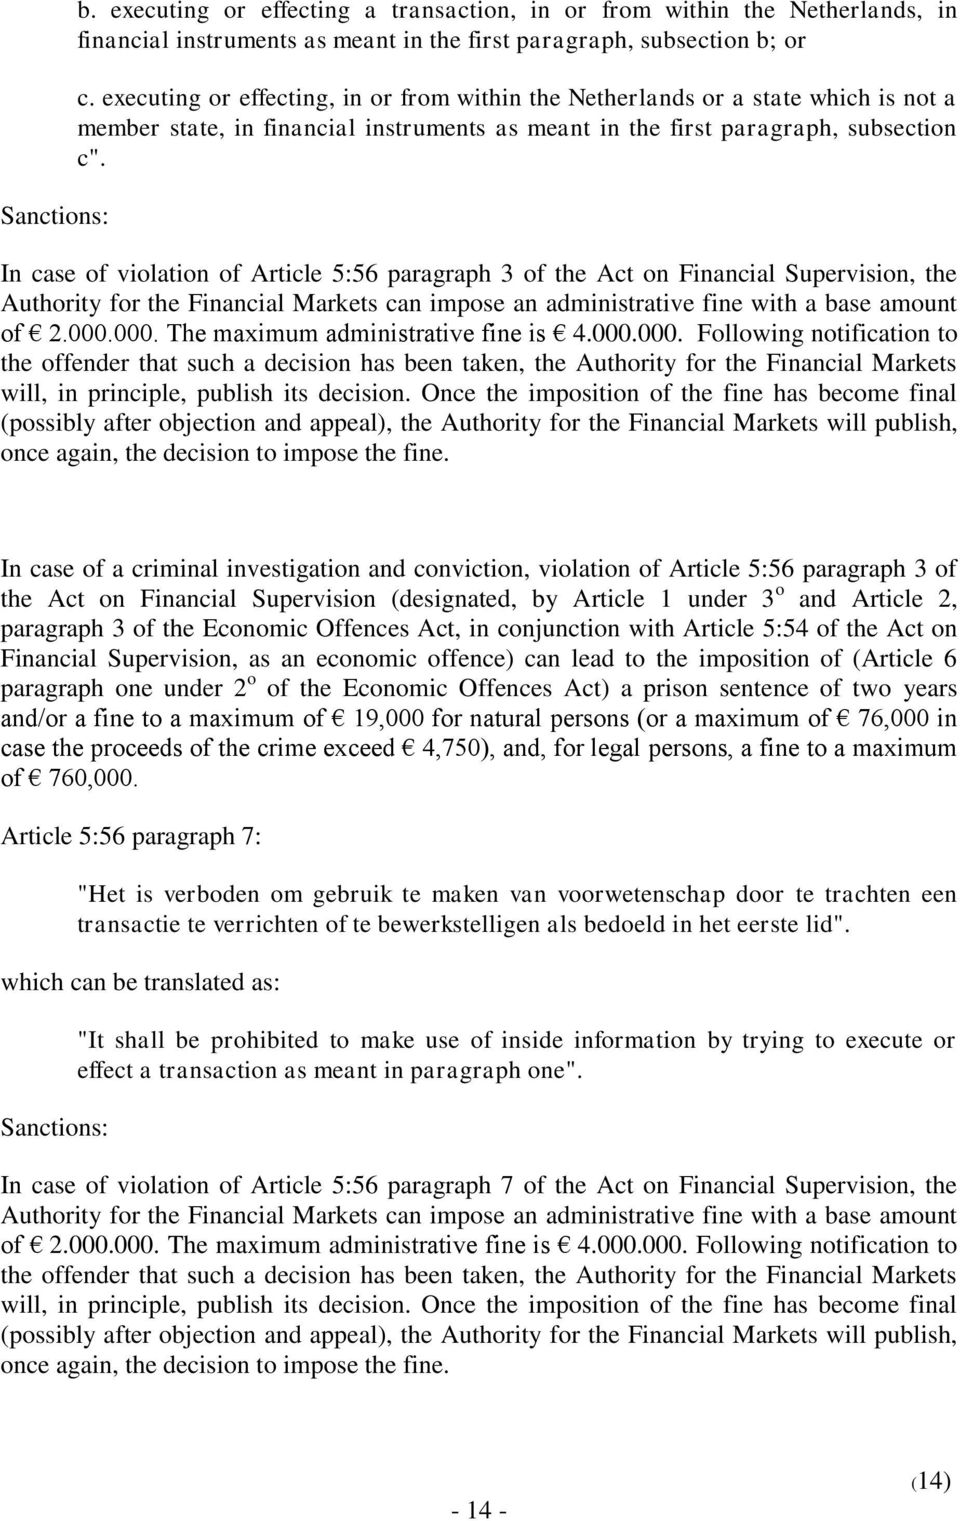 In case of violation of Article 5:56 paragraph 3 of the Act on Financial Supervision, the Authority for the Financial Markets can impose an administrative fine with a base amount of 2.000.